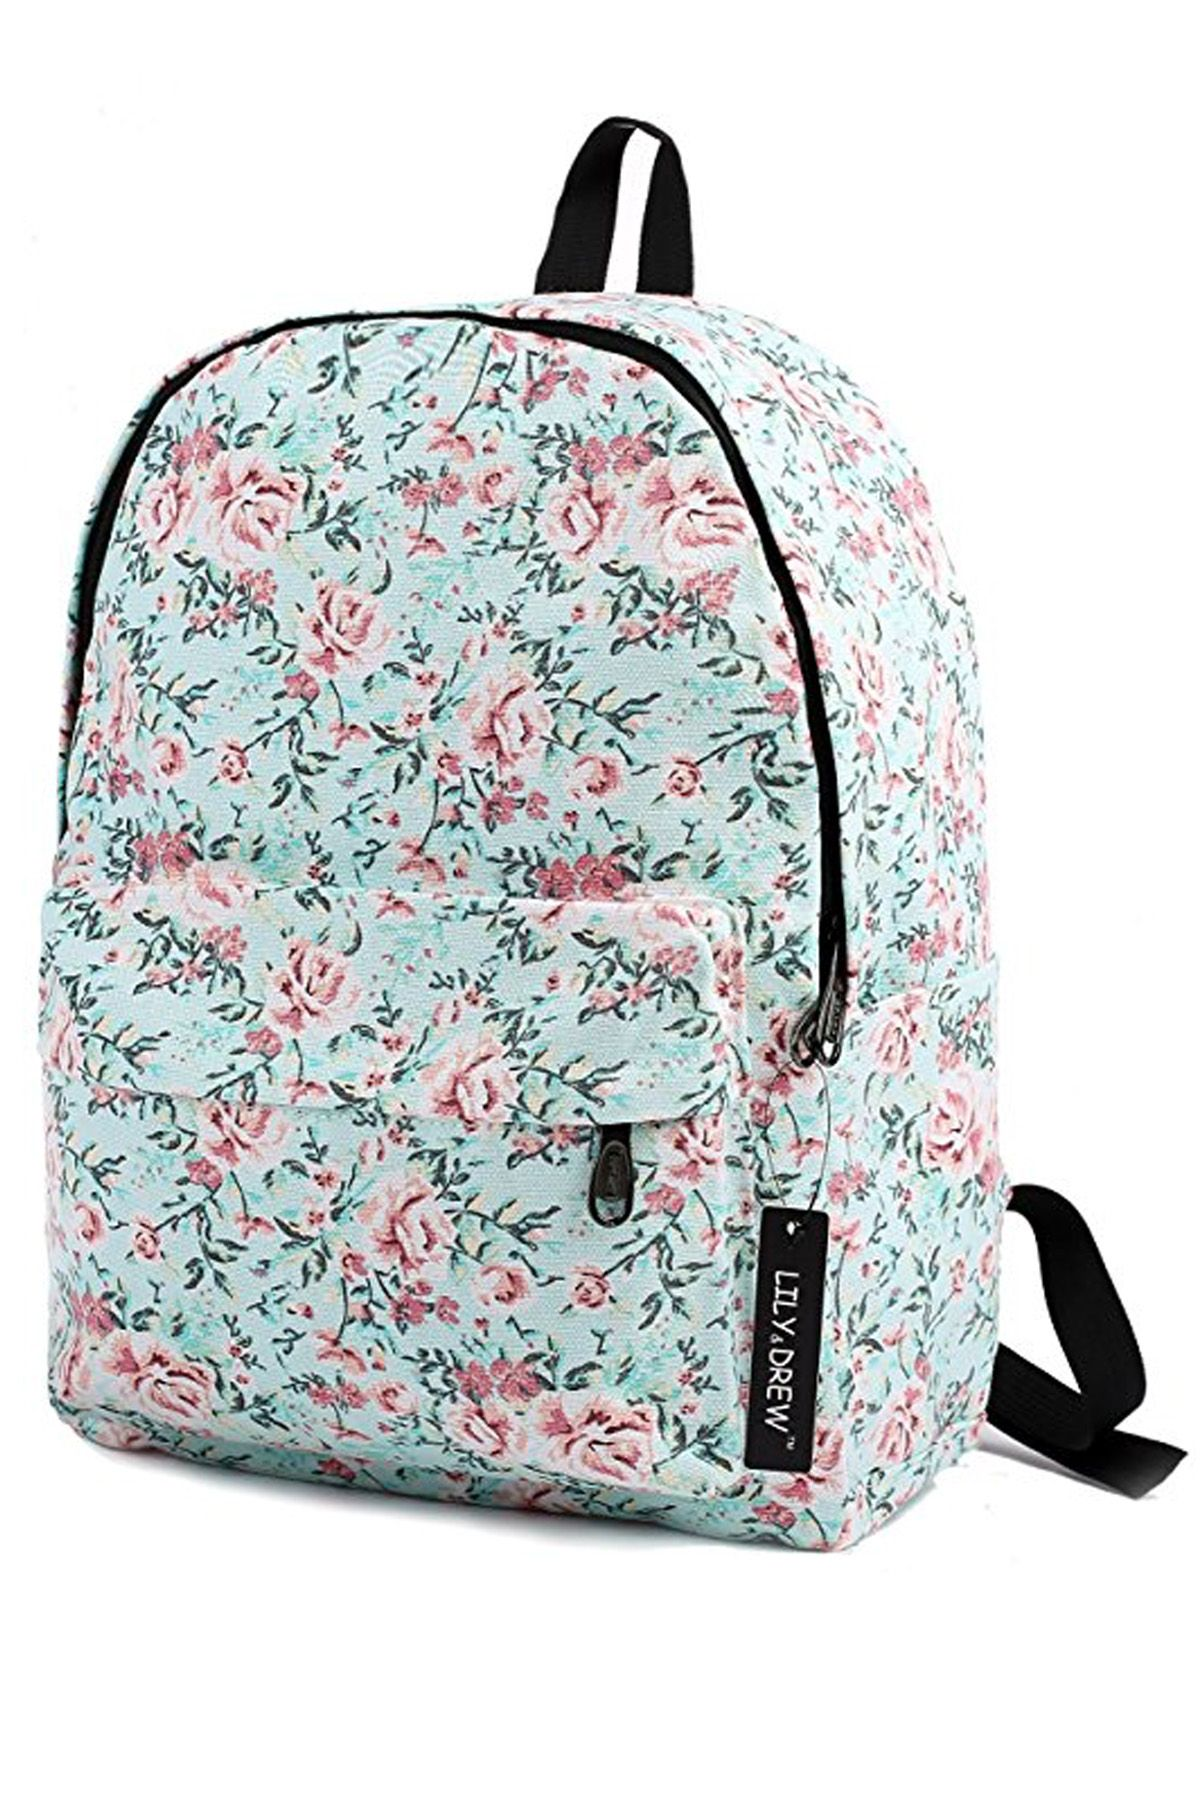 18 Cool Back-to-School Backpacks - Cheap